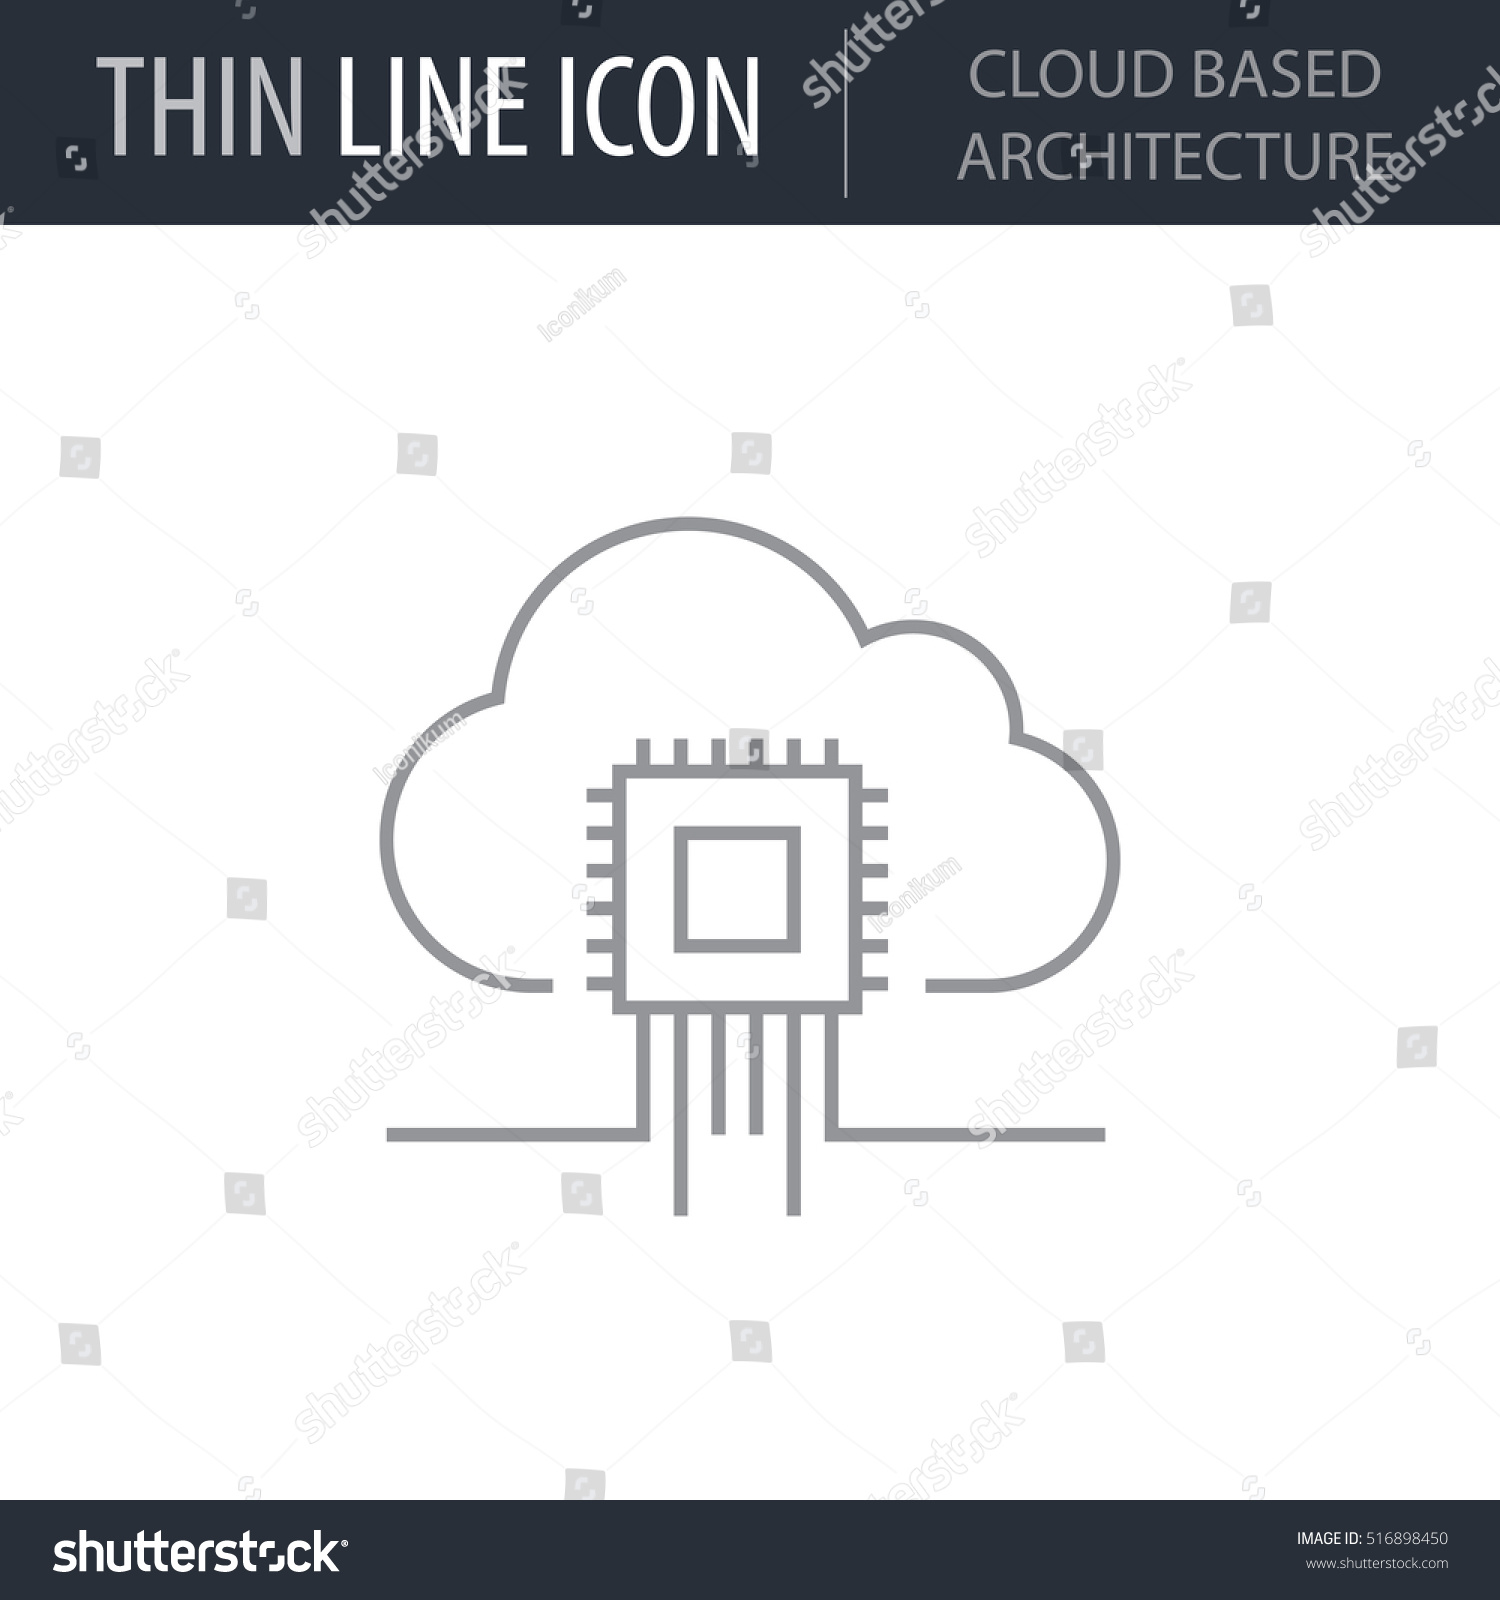 Symbol Of Cloud Based Architecture Thin Line Icon Data Science Stroke Pictogram Graphic For